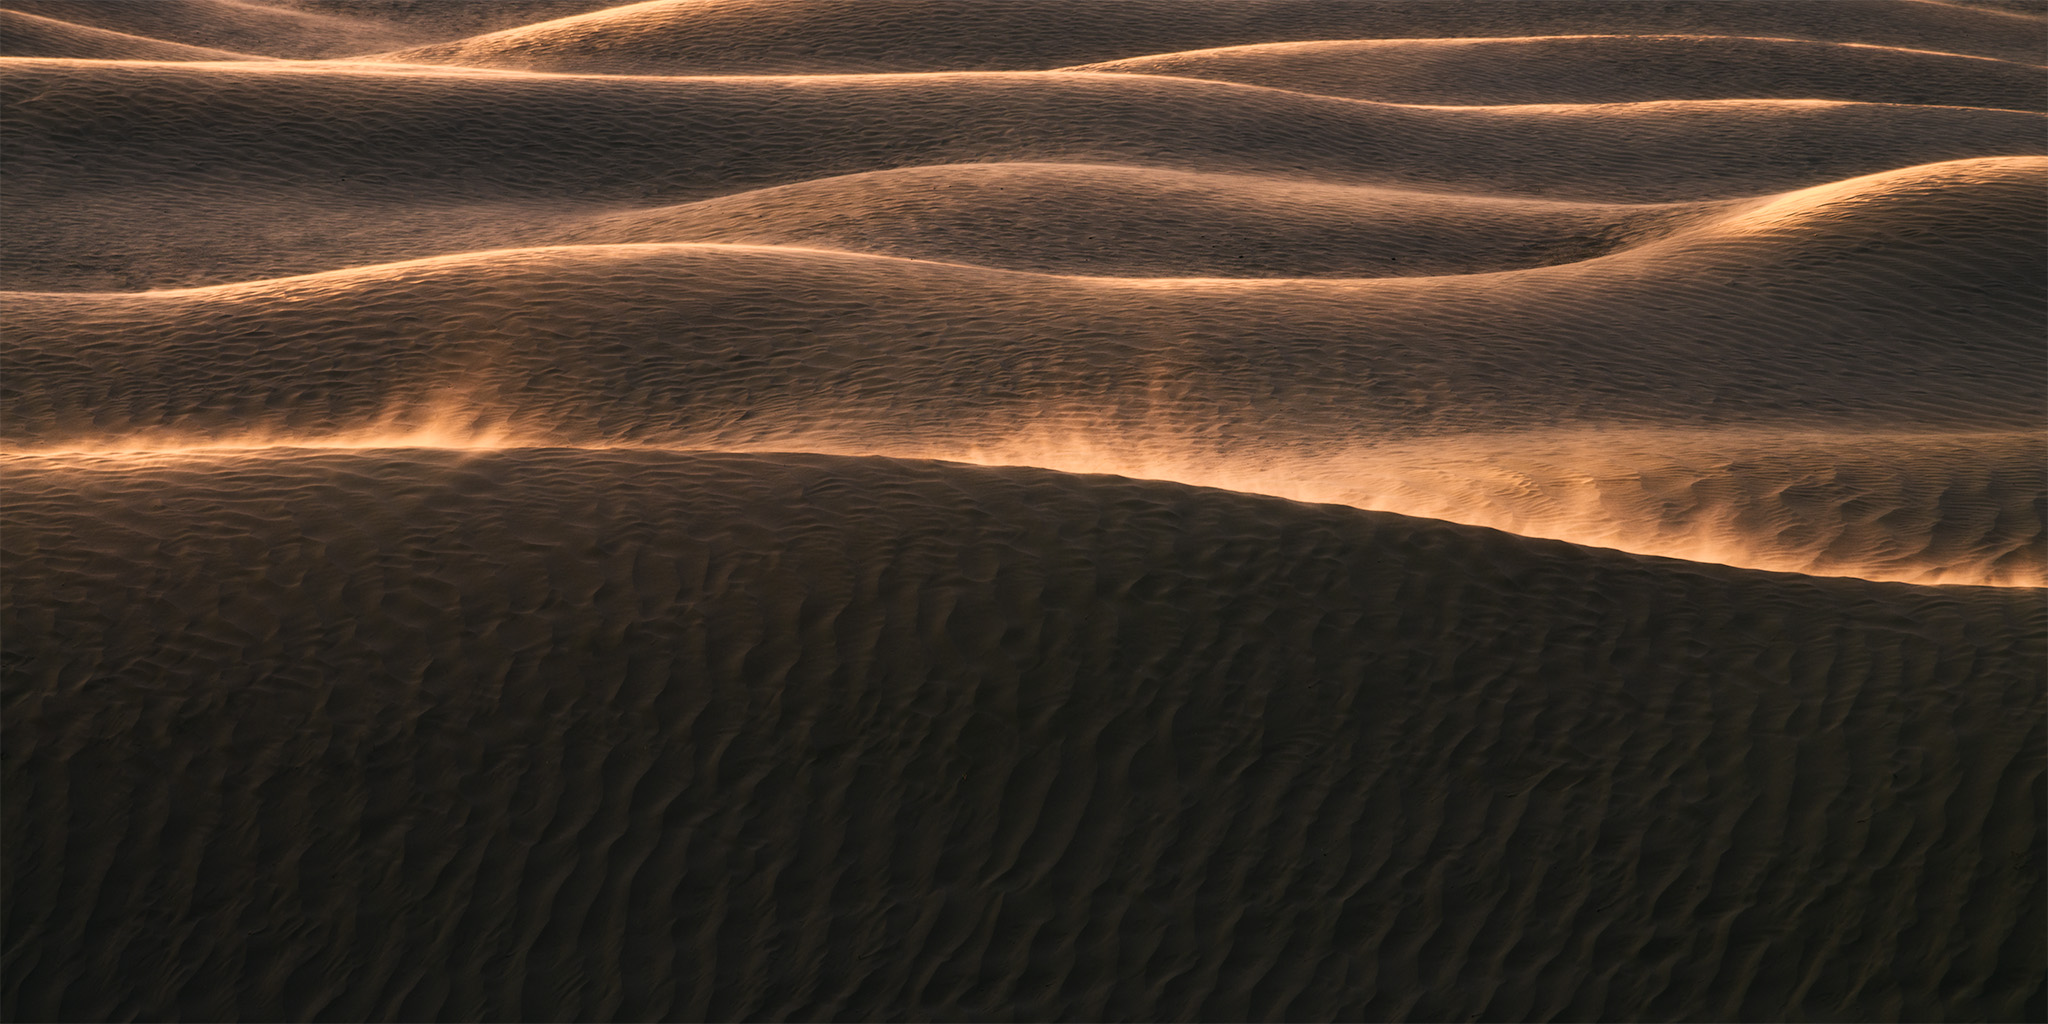 An intimate landscape photography of evening light hitting windy sand dunes at the Great Sandhills in Saskatchewan